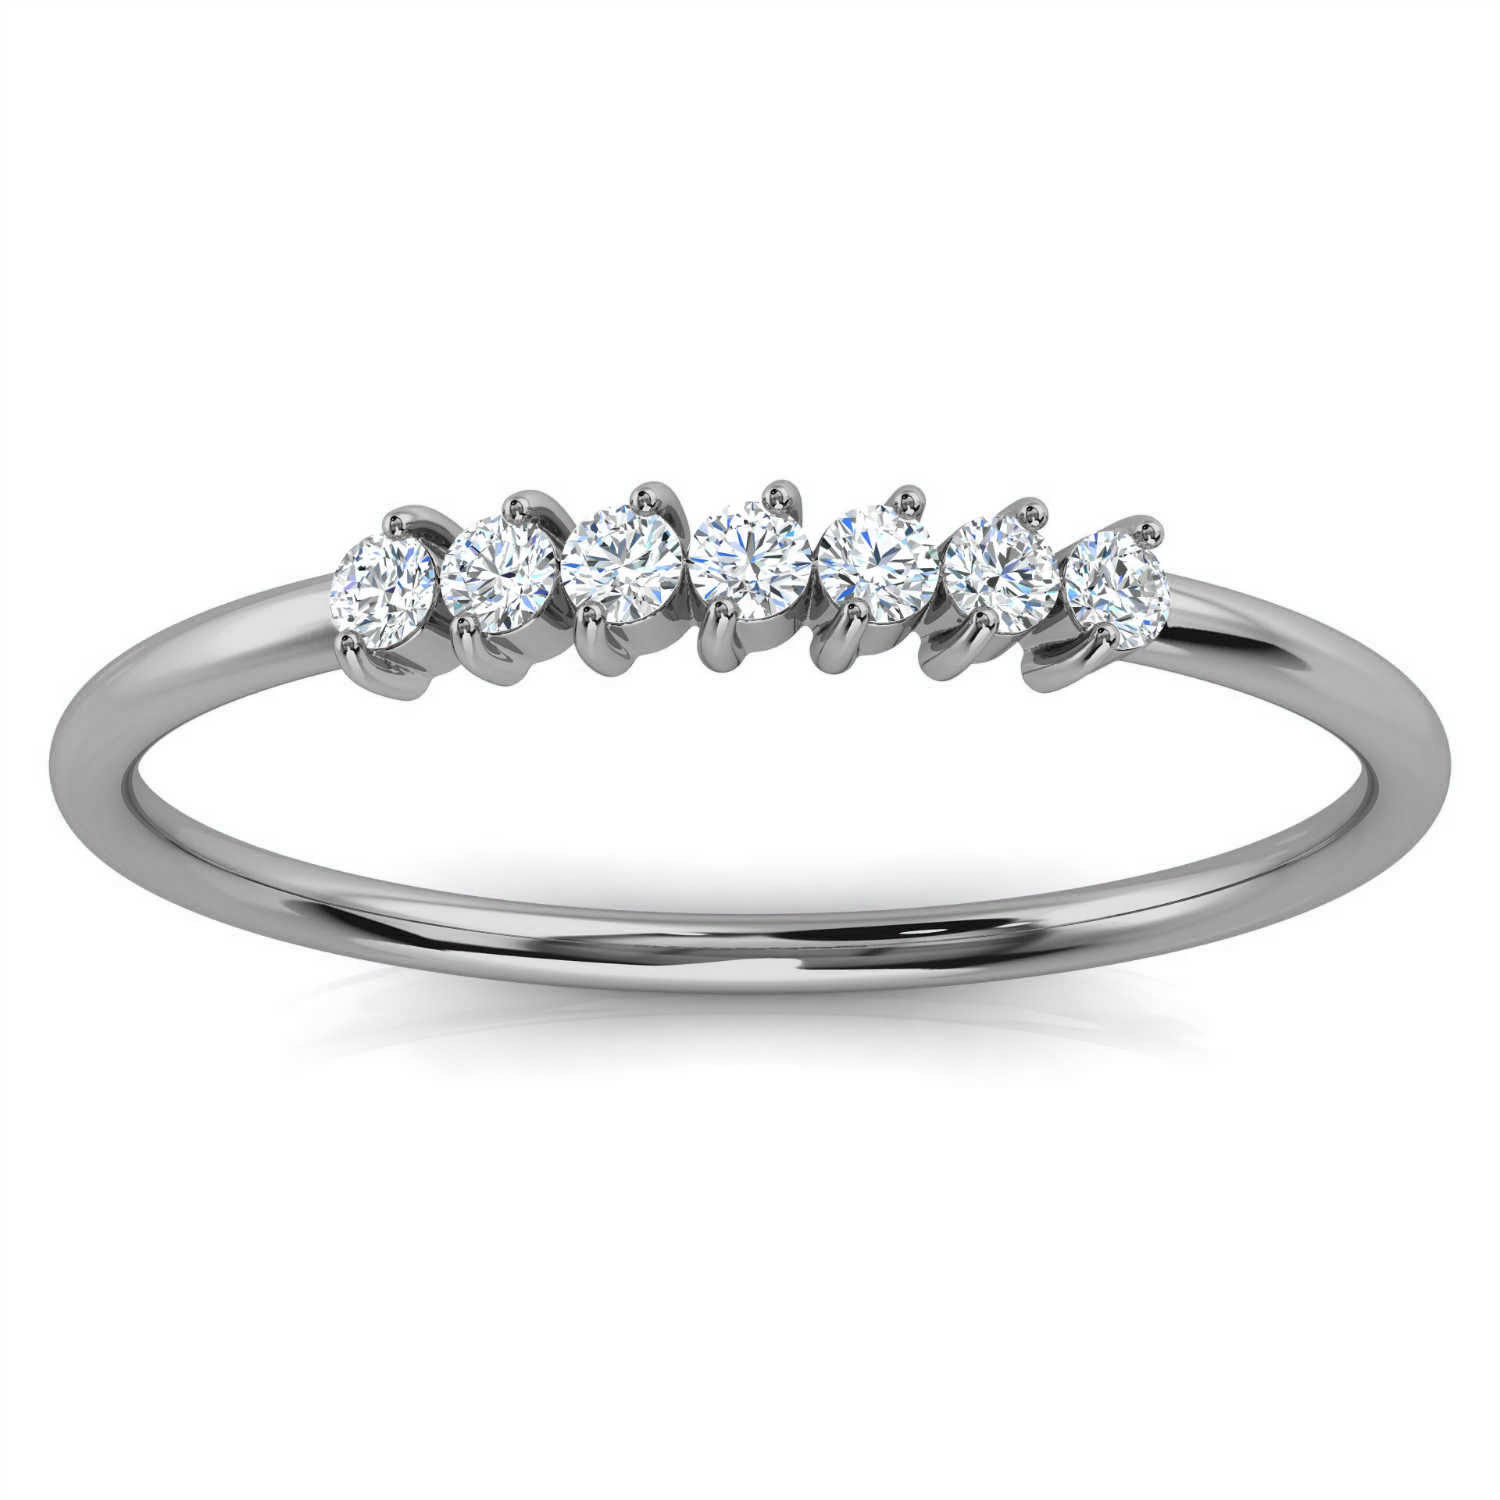 14K White Gold Shelby Minimalist Organic Design Diamond Ring (1/10 ct. tw)